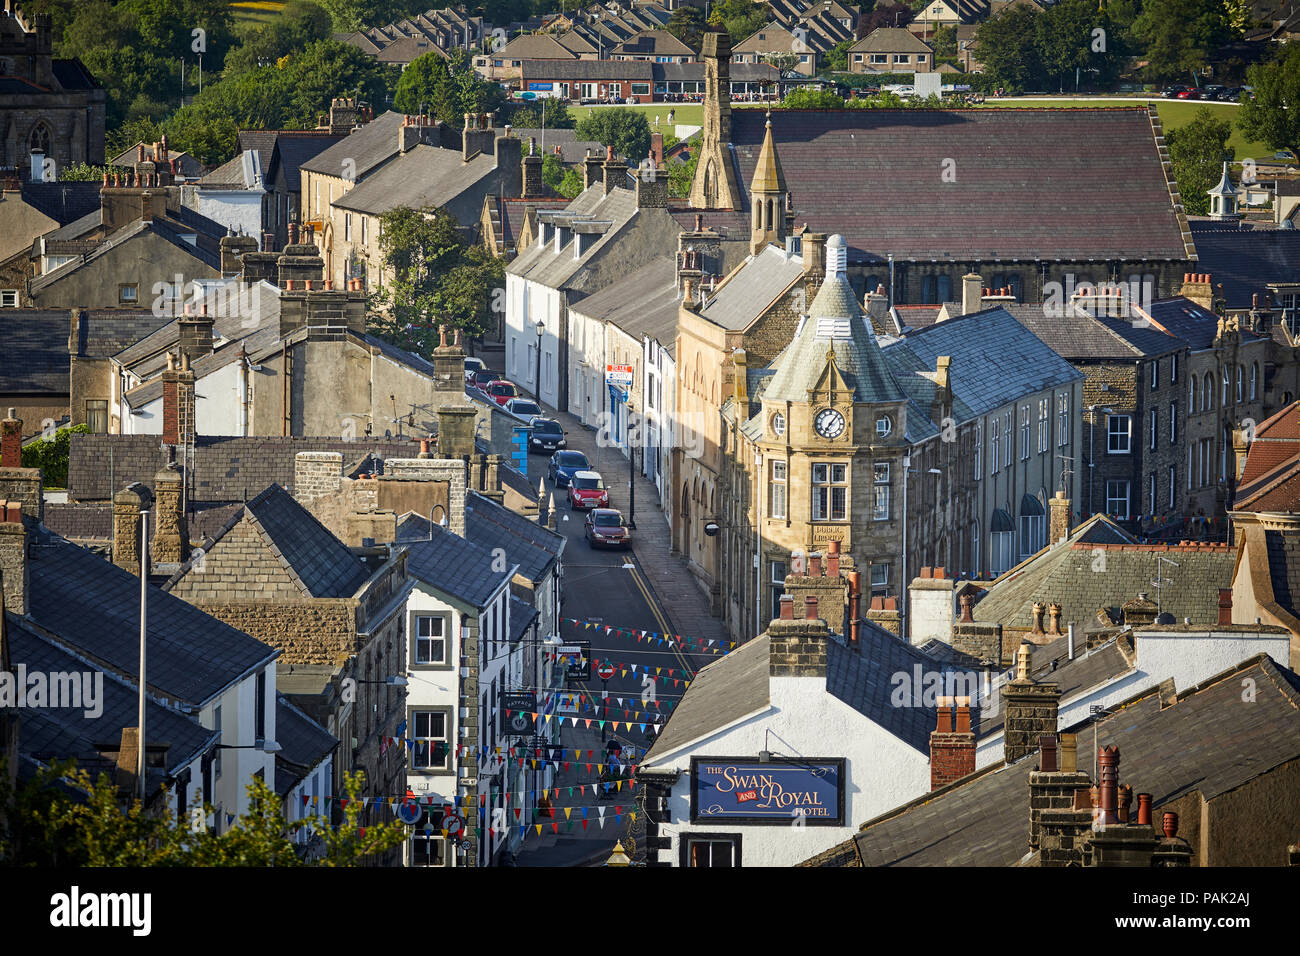 Clitheroe Borough of Ribble Valley Lancashire  The town centre framed by the landmark library building and clock face a Grade II listed building - Stock Image